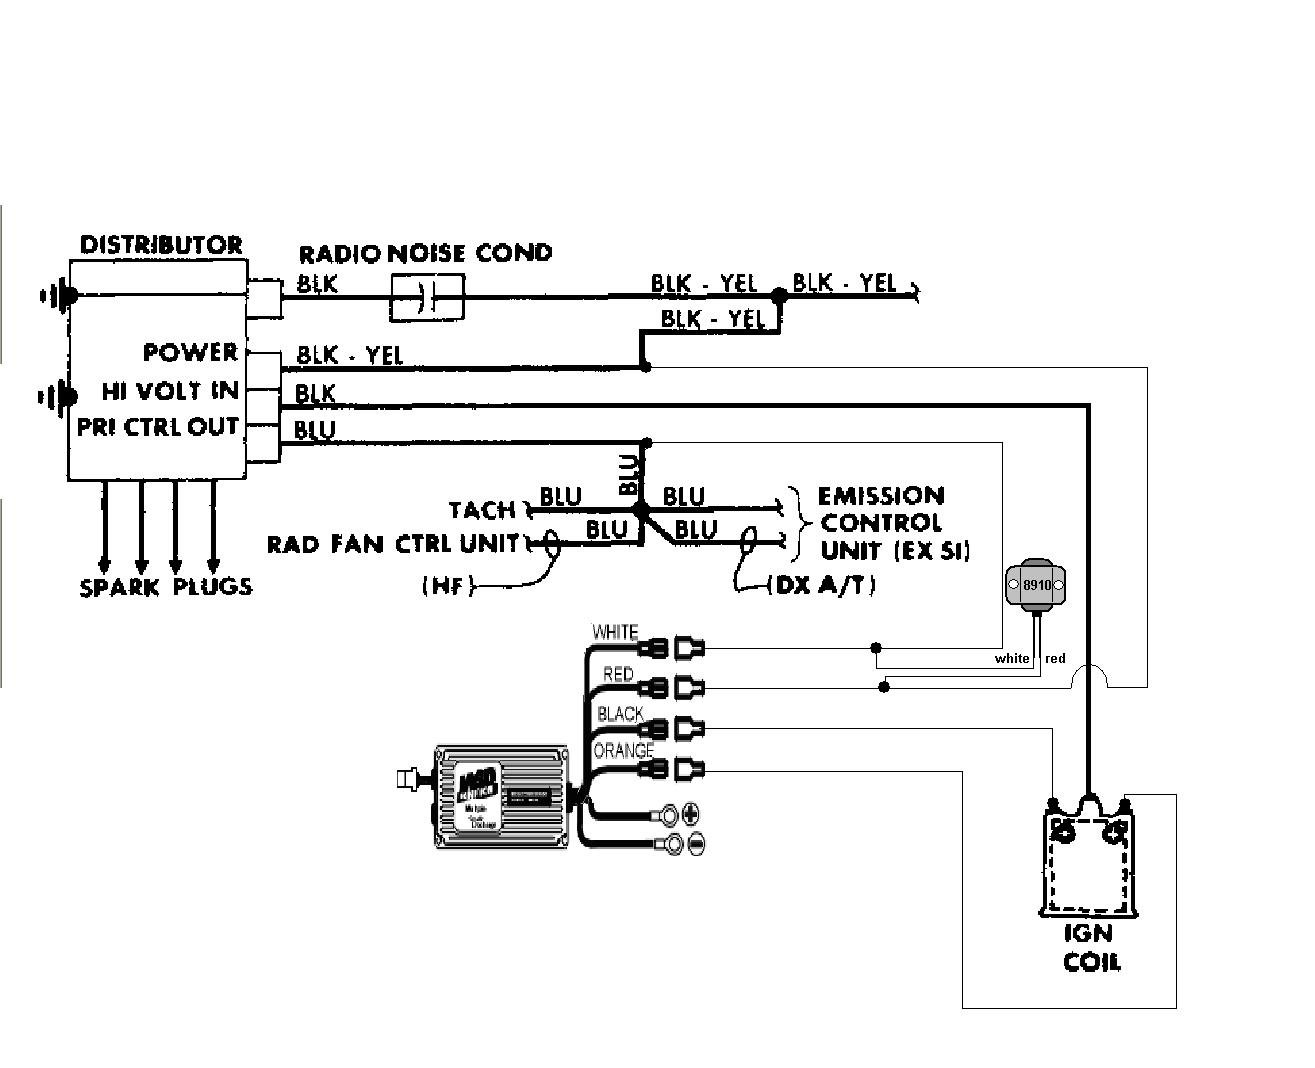 Honda Crx Ignition System Schematic Trusted Schematics Diagram 1993 Prelude Wiring Electrical 1990 Detailed External Coil